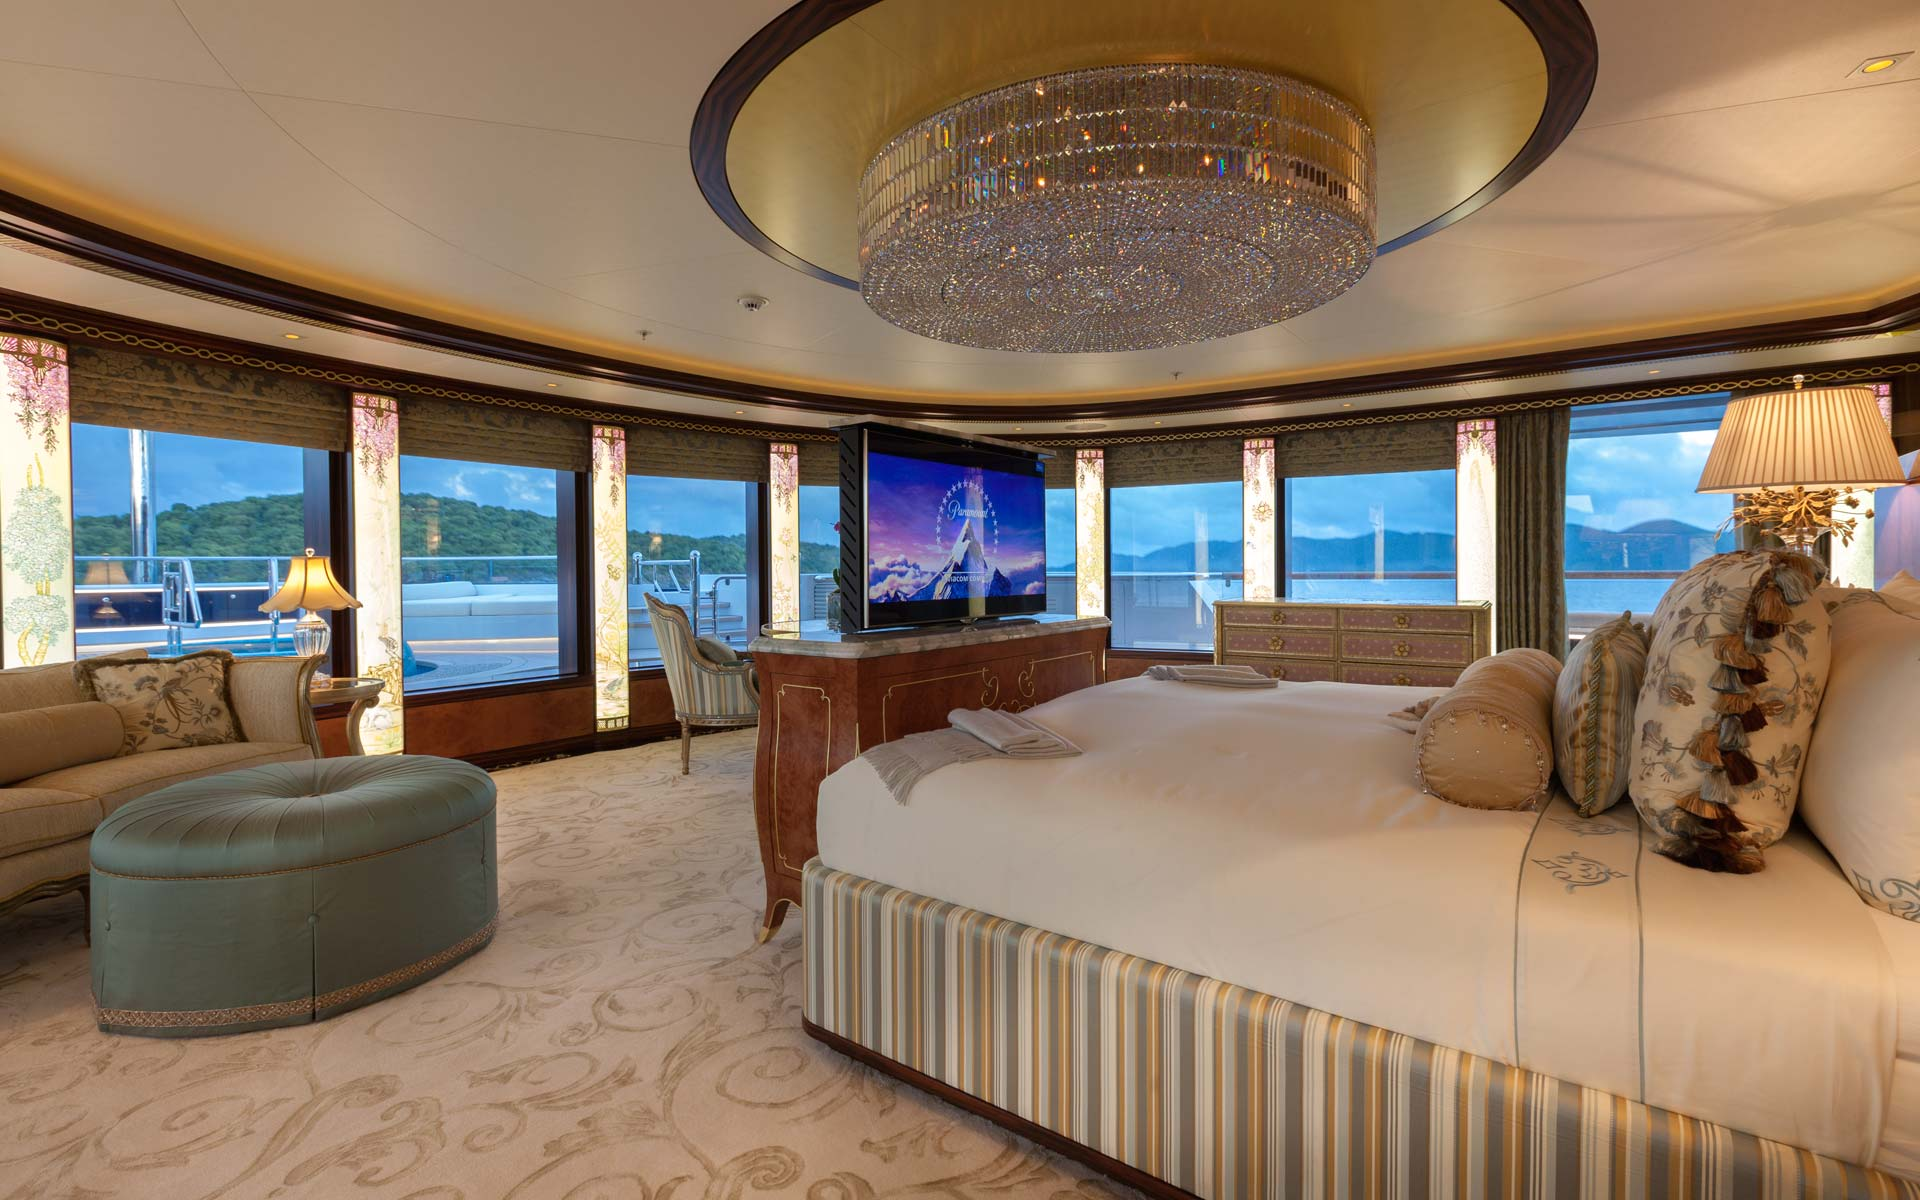 Master stateroom with a private deck area